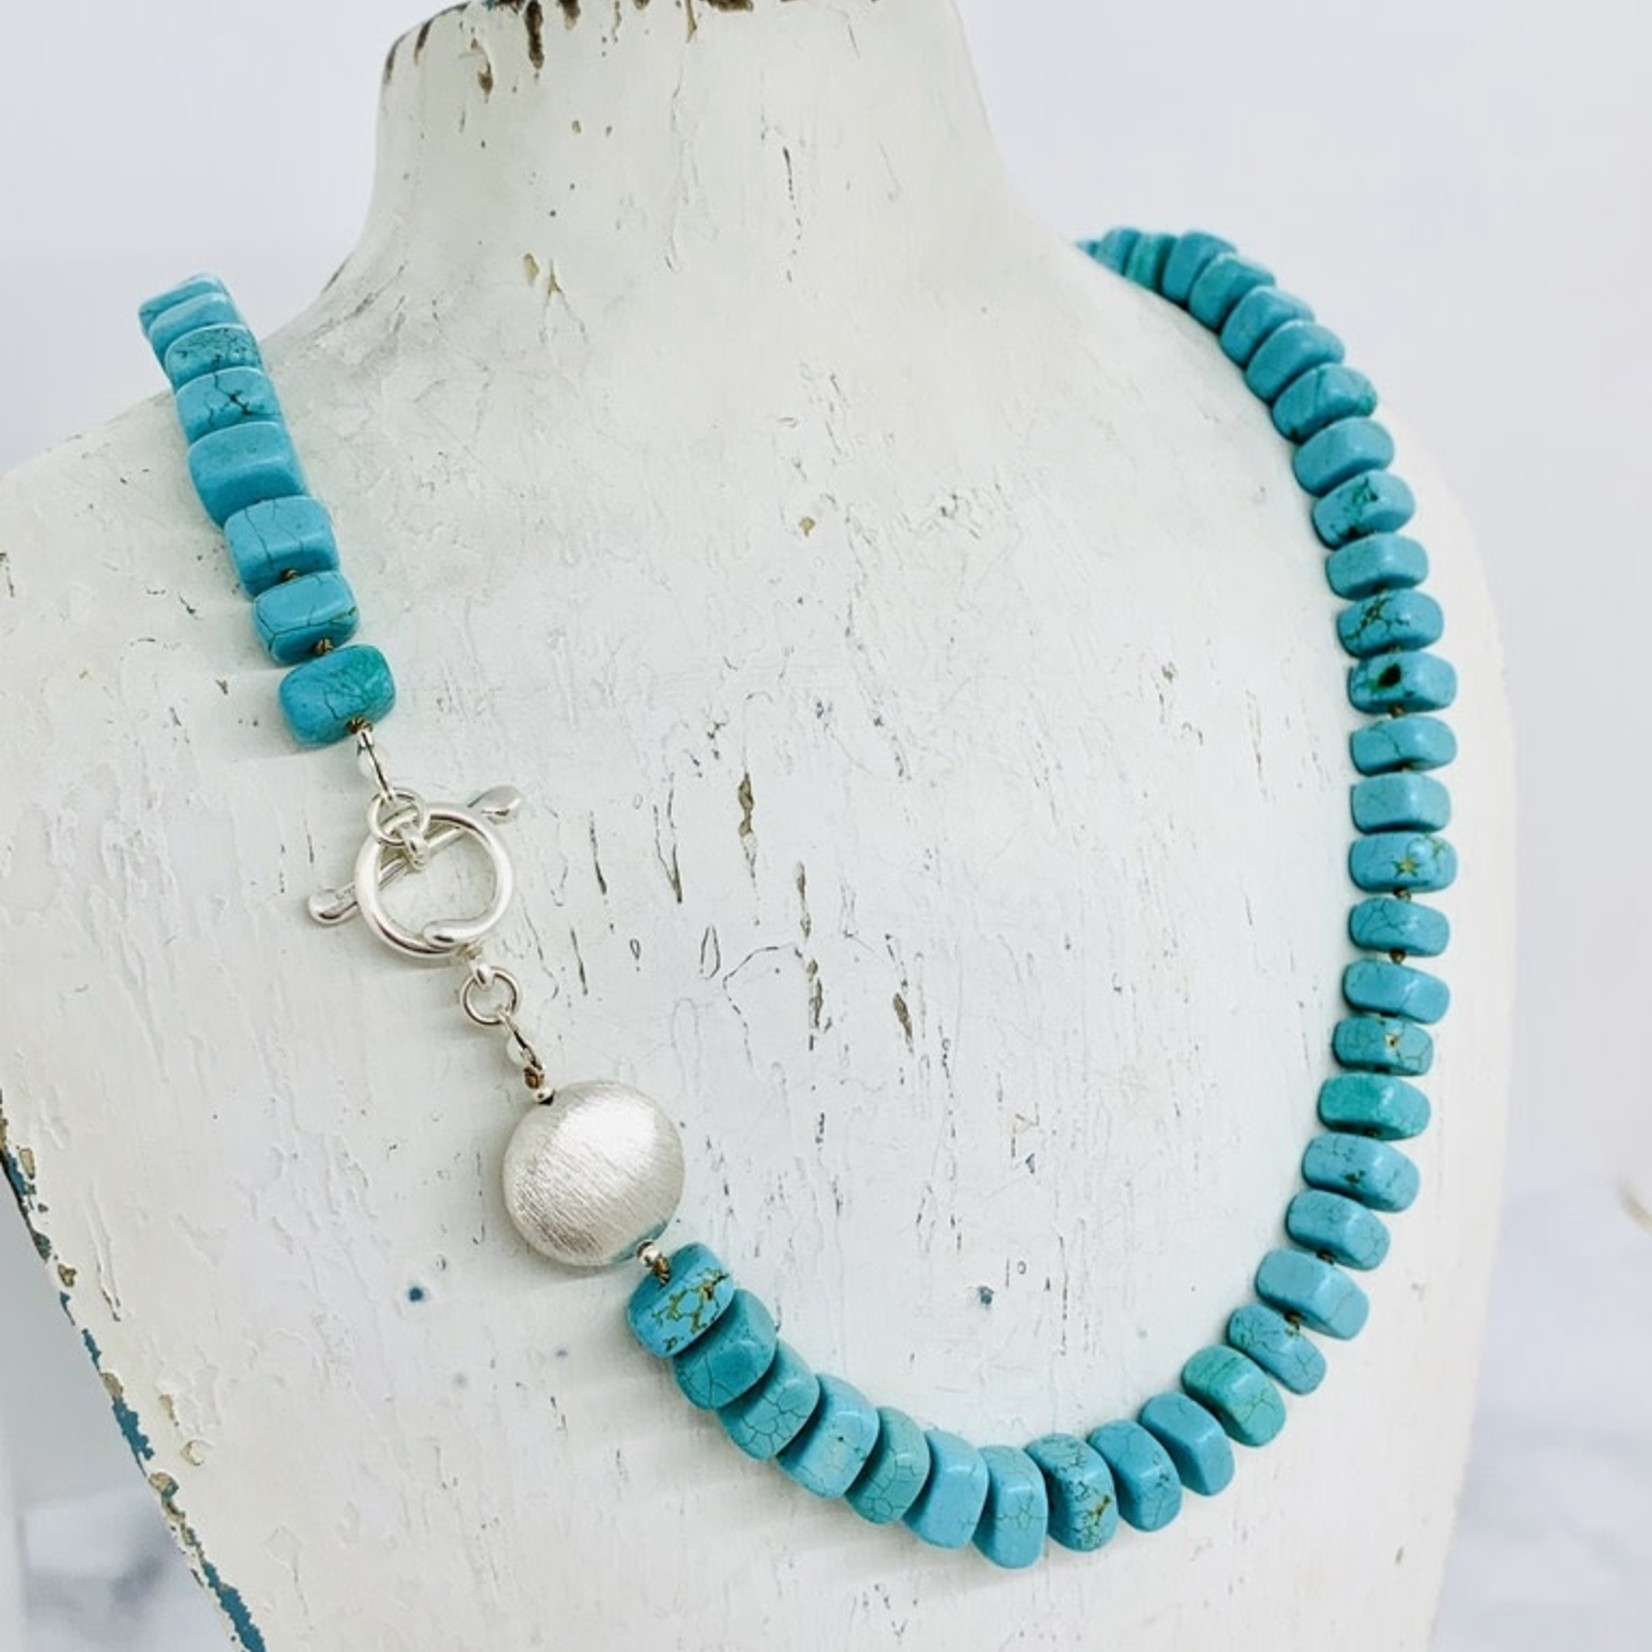 Handmade necklace with square turquoise, 1 brushed coin knotted on natural silk, toggle